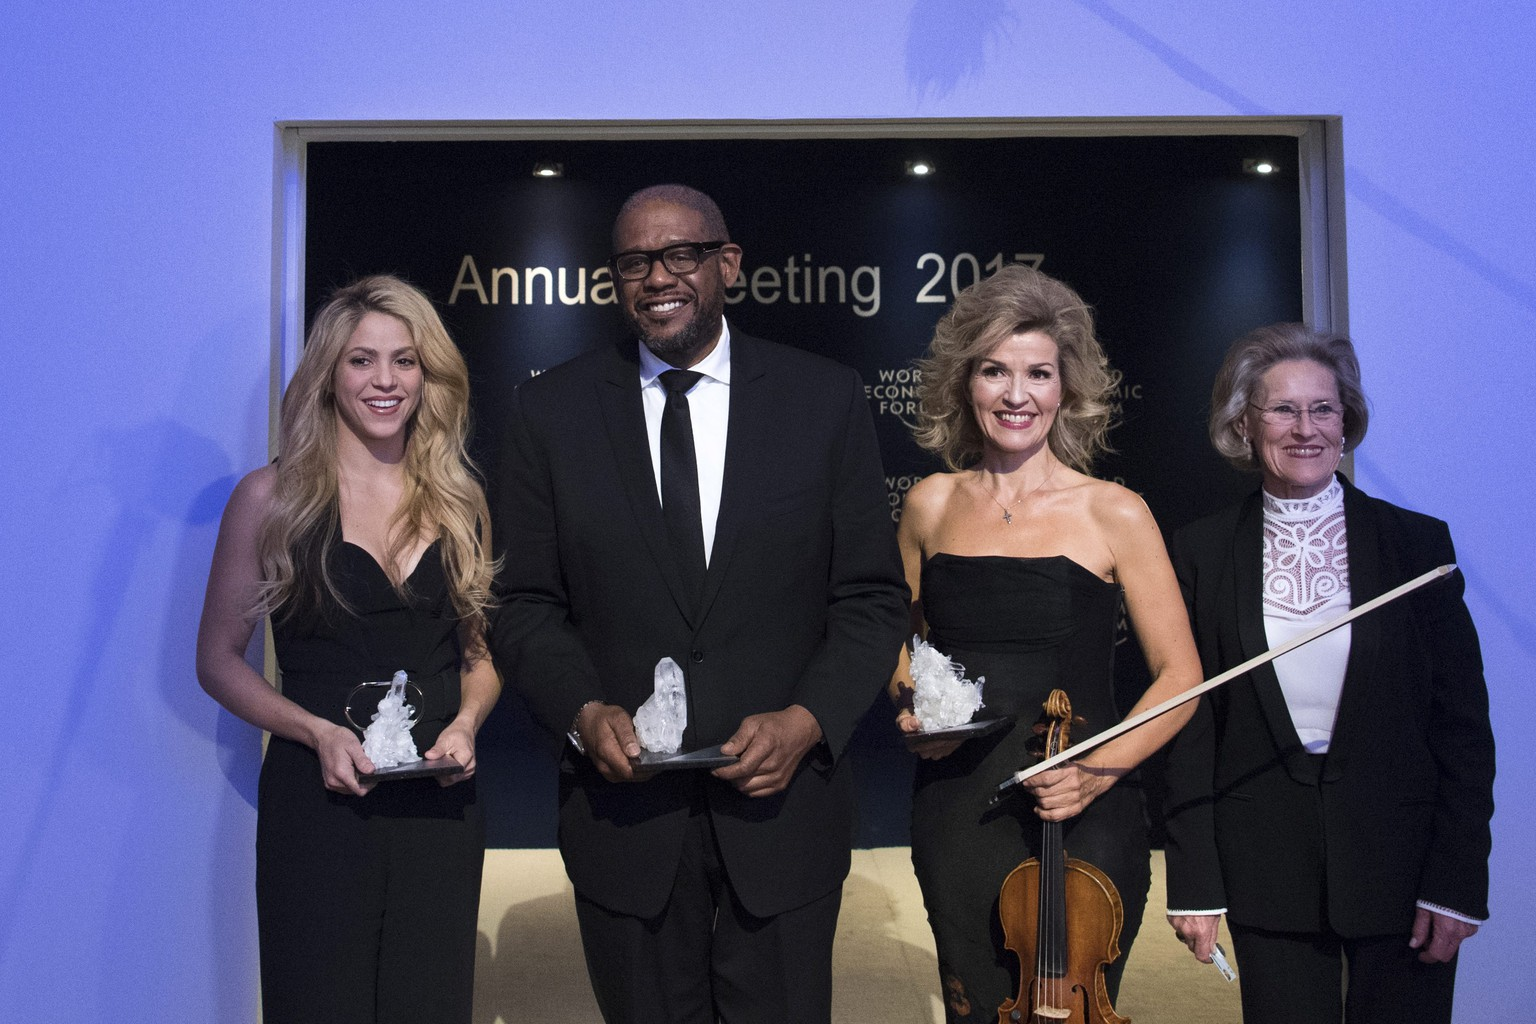 epa05722279 (L-R) Colombian singer and UNICEF Global Ambassador Shakira, US actor and social activist Forest Whitaker, German violinist Anne-Sophie Mutter and Hilde Schwab, Chairperson and Co-Founder of Schwab Foundation for Social Entrepreneurship, pose after the Crystal Award Ceremony on the eve of the 47th annual meeting of the World Economic Forum (WEF) in Davos, Switzerland, 16 January 2017. The annual meeting brings together business leaders, international political leaders and select intellectuals, to discuss the pressing issues facing the world. The overarching theme of the 2017 meeting, which takes place from 17 to 20 January, is 'Responsive and Responsible Leadership'.  EPA/GIAN EHRENZELLER